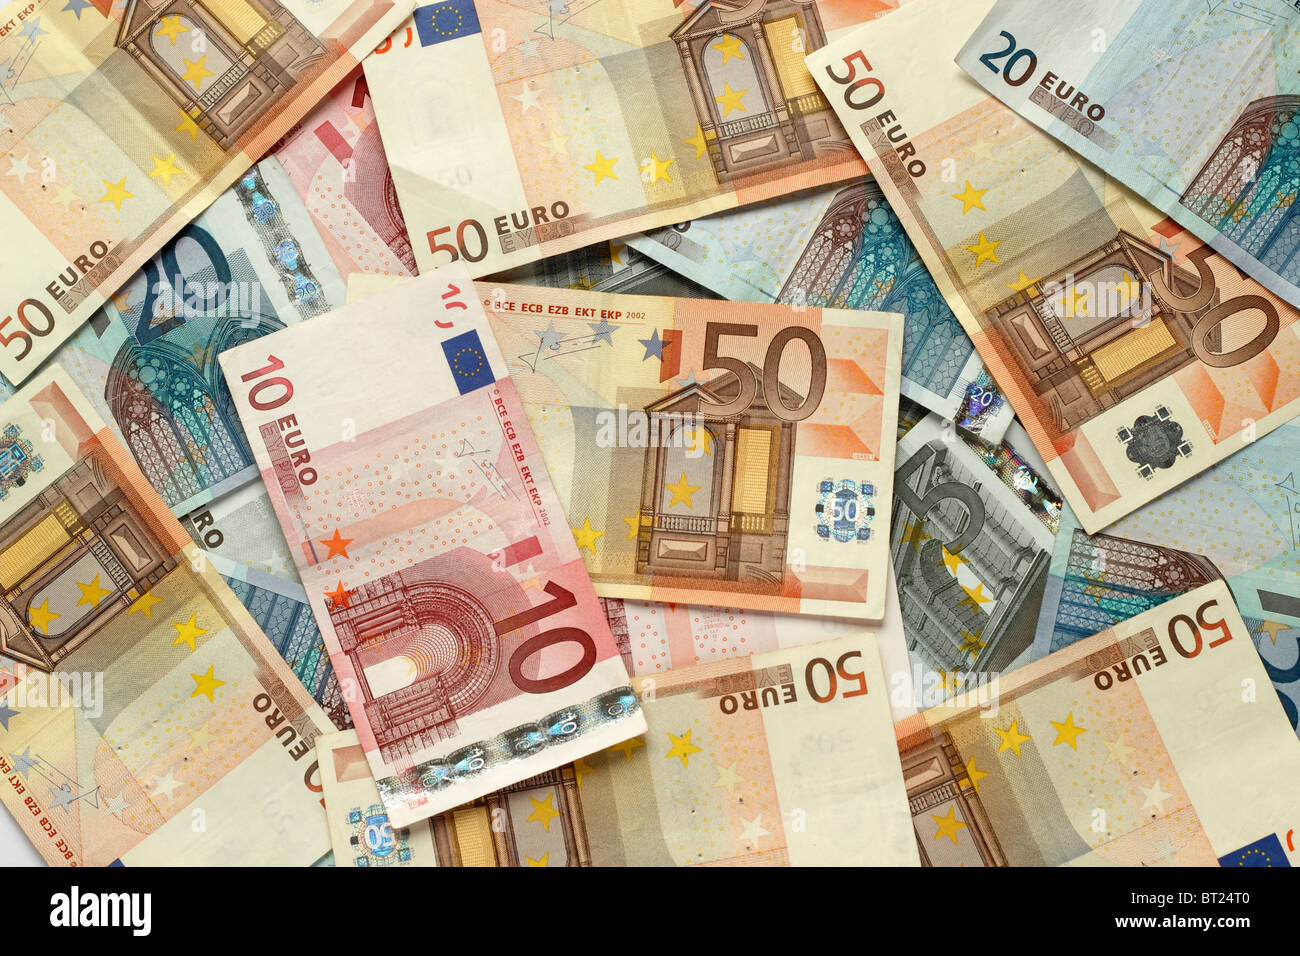 Lots of various Euro cash notes covering the photo. - Stock Image